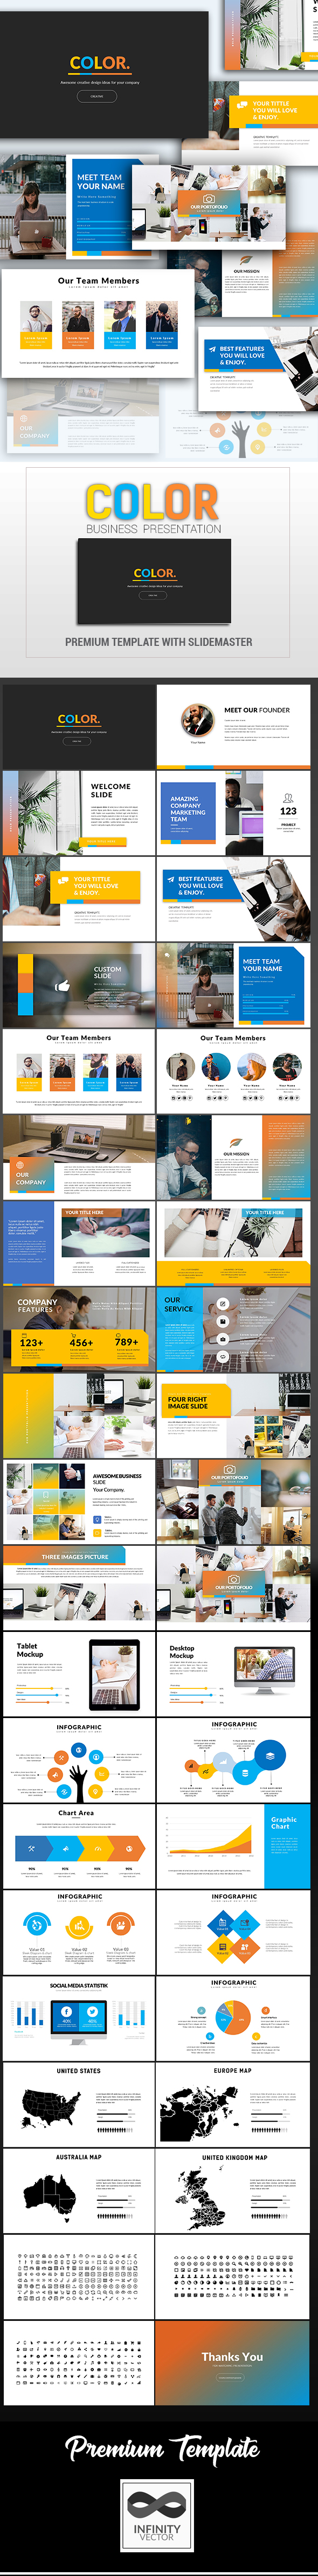 Color Multipurpose Presentation - PowerPoint Templates Presentation Templates